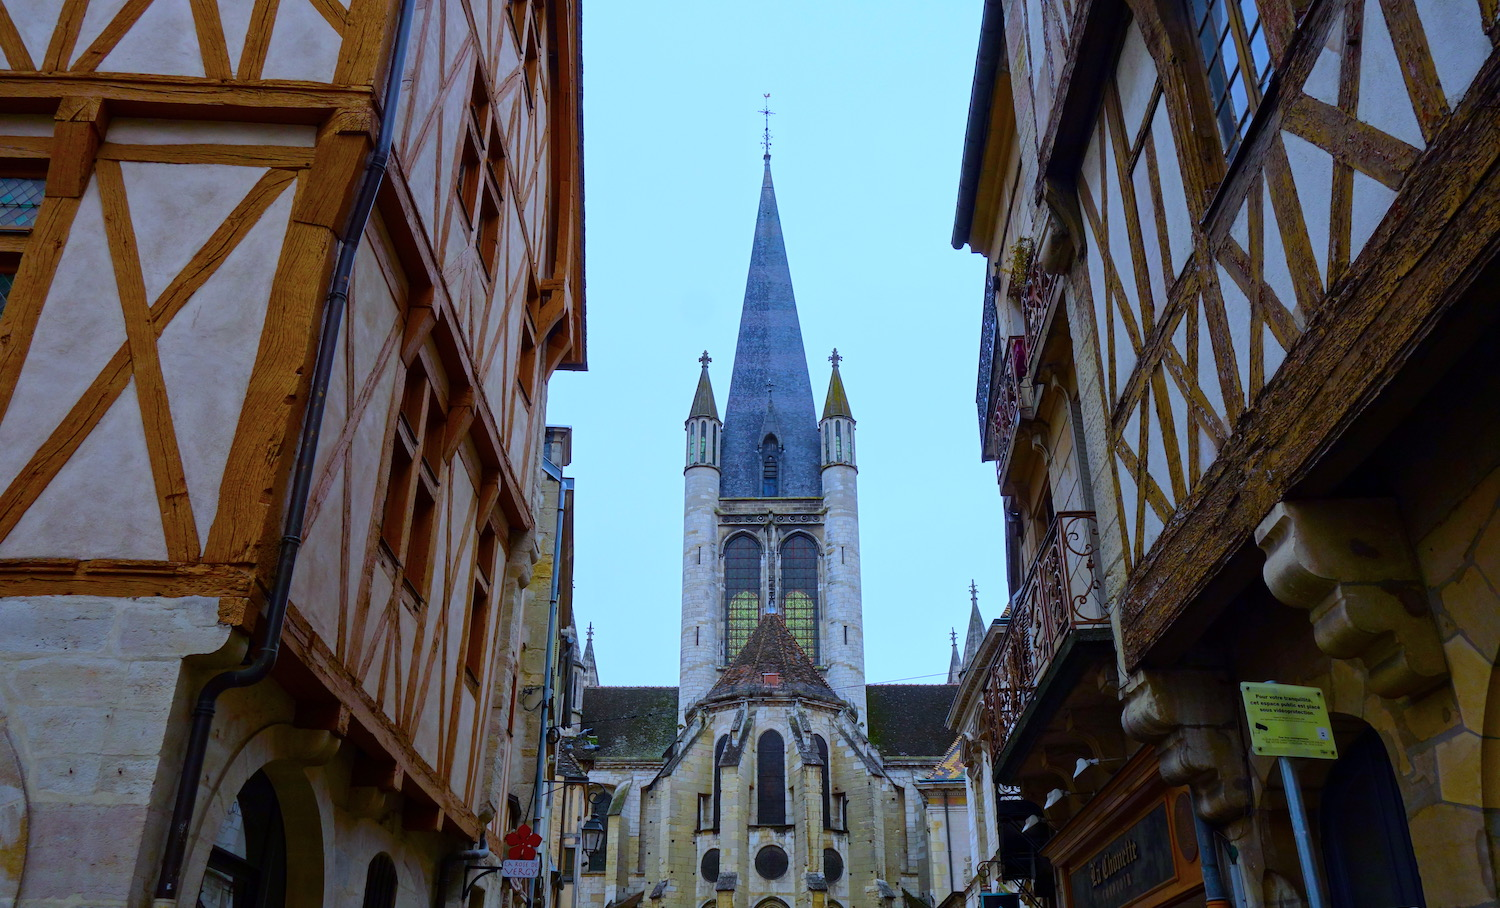 These Streets in Dijon Are Rich in History on gustave eiffel,